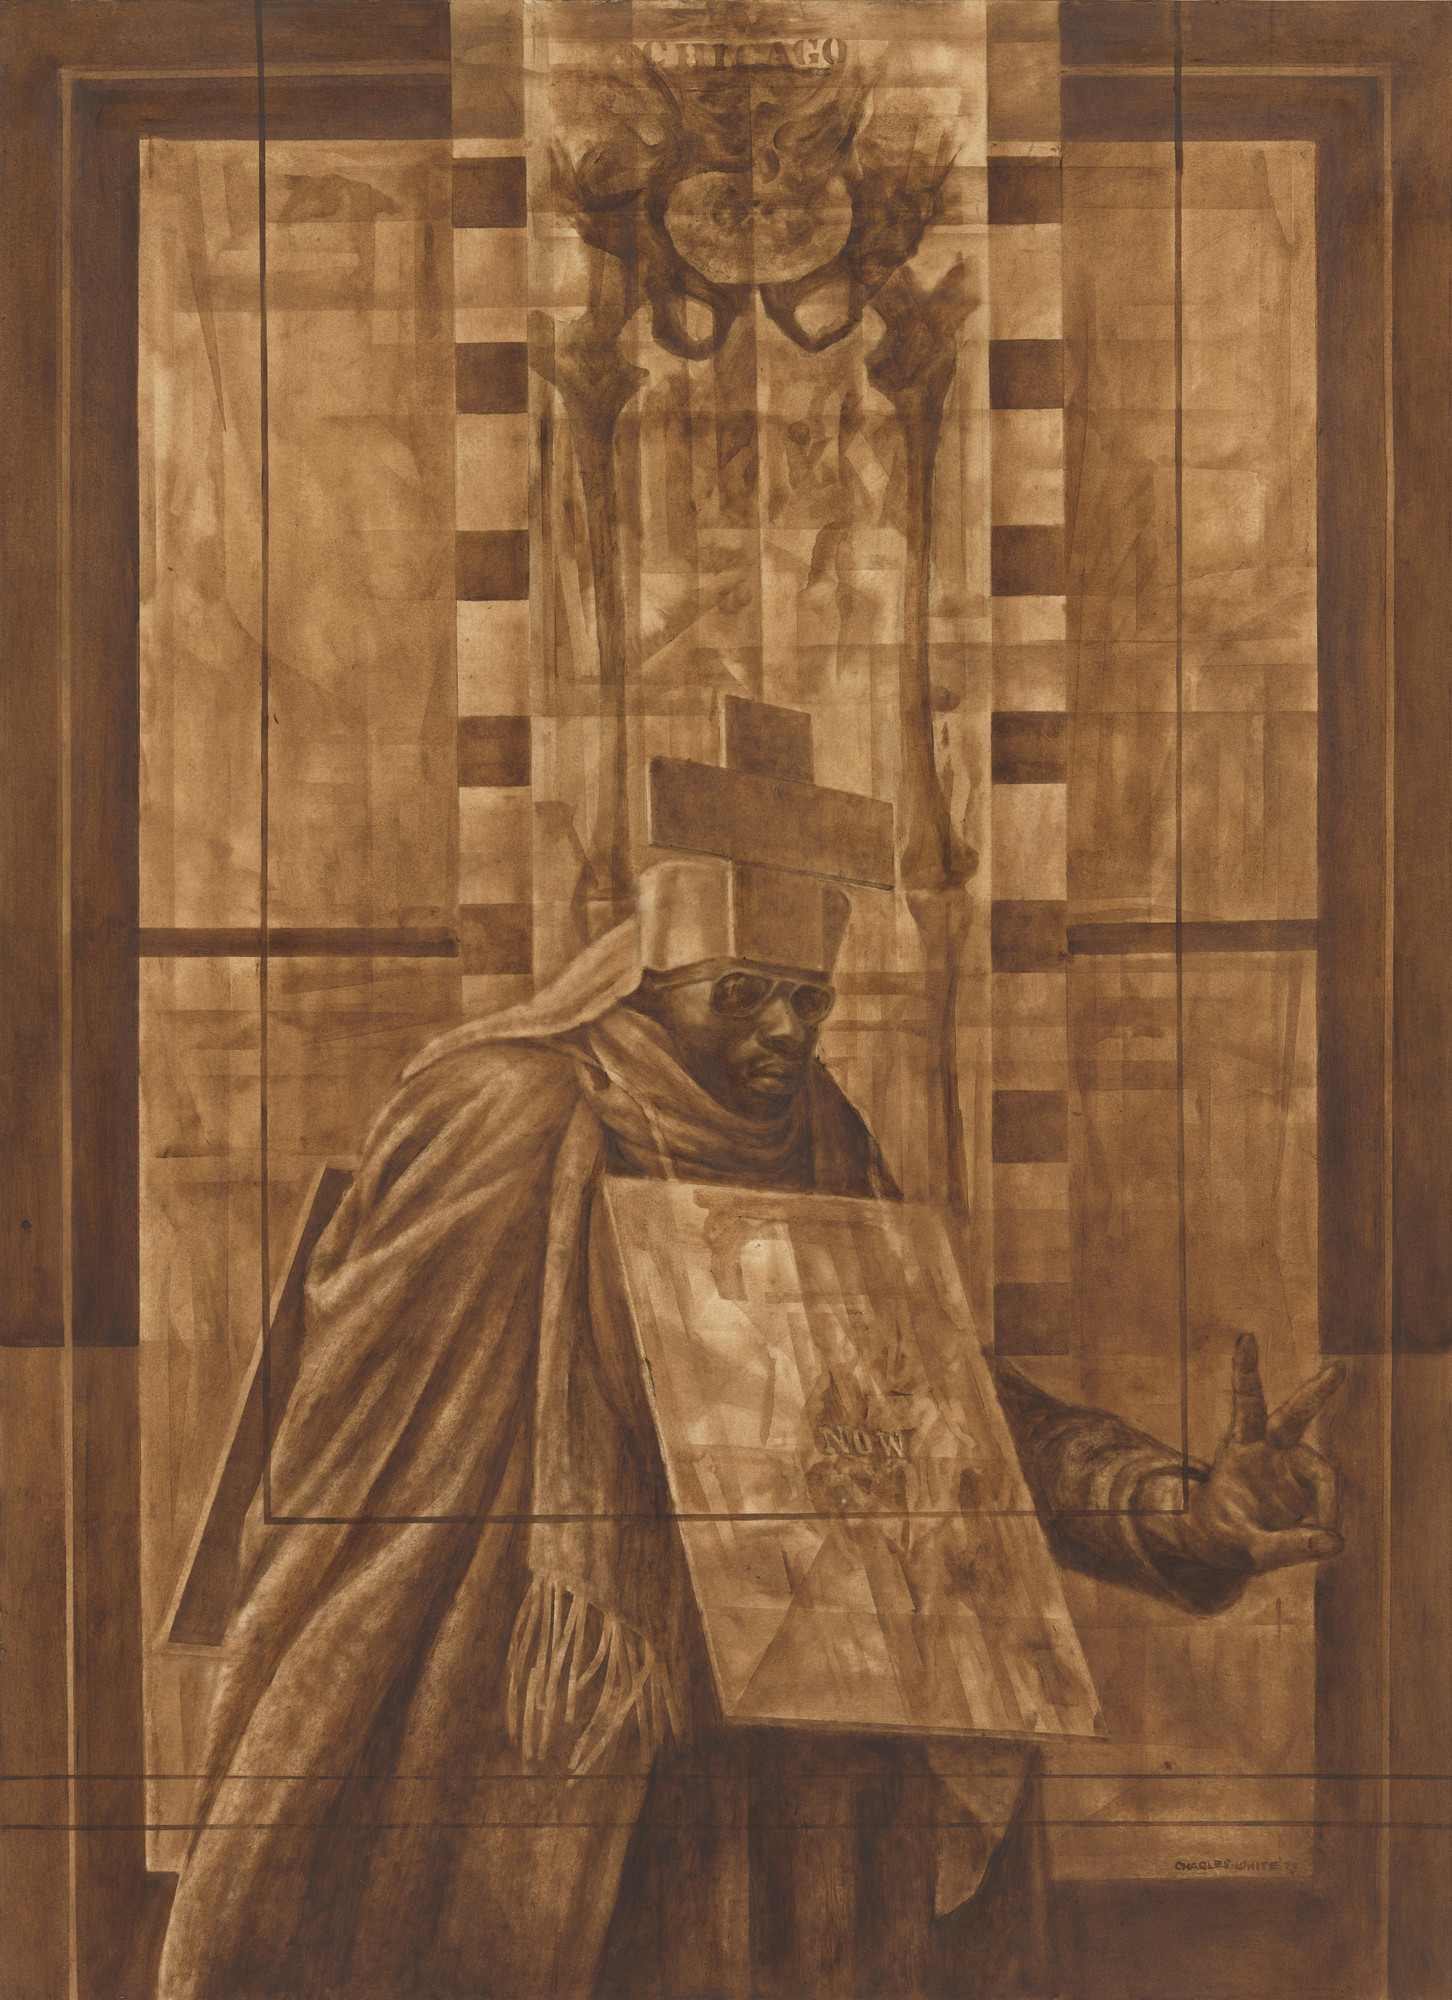 Charles White (American, 1918-1979). Black Pope (Sandwich Board Man), 1973. Oil wash on board. 60 × 43 7⁄8 in. (152.4 × 111.4 cm). The Museum of Modern Art, New York. Richard S. Zeisler Bequest (by exchange), The Friends of Education of The Museum of Modern Art, Committee on Drawings Fund, Dian Woodner, and Agnes Gund. © 2017 The Charles White Archives